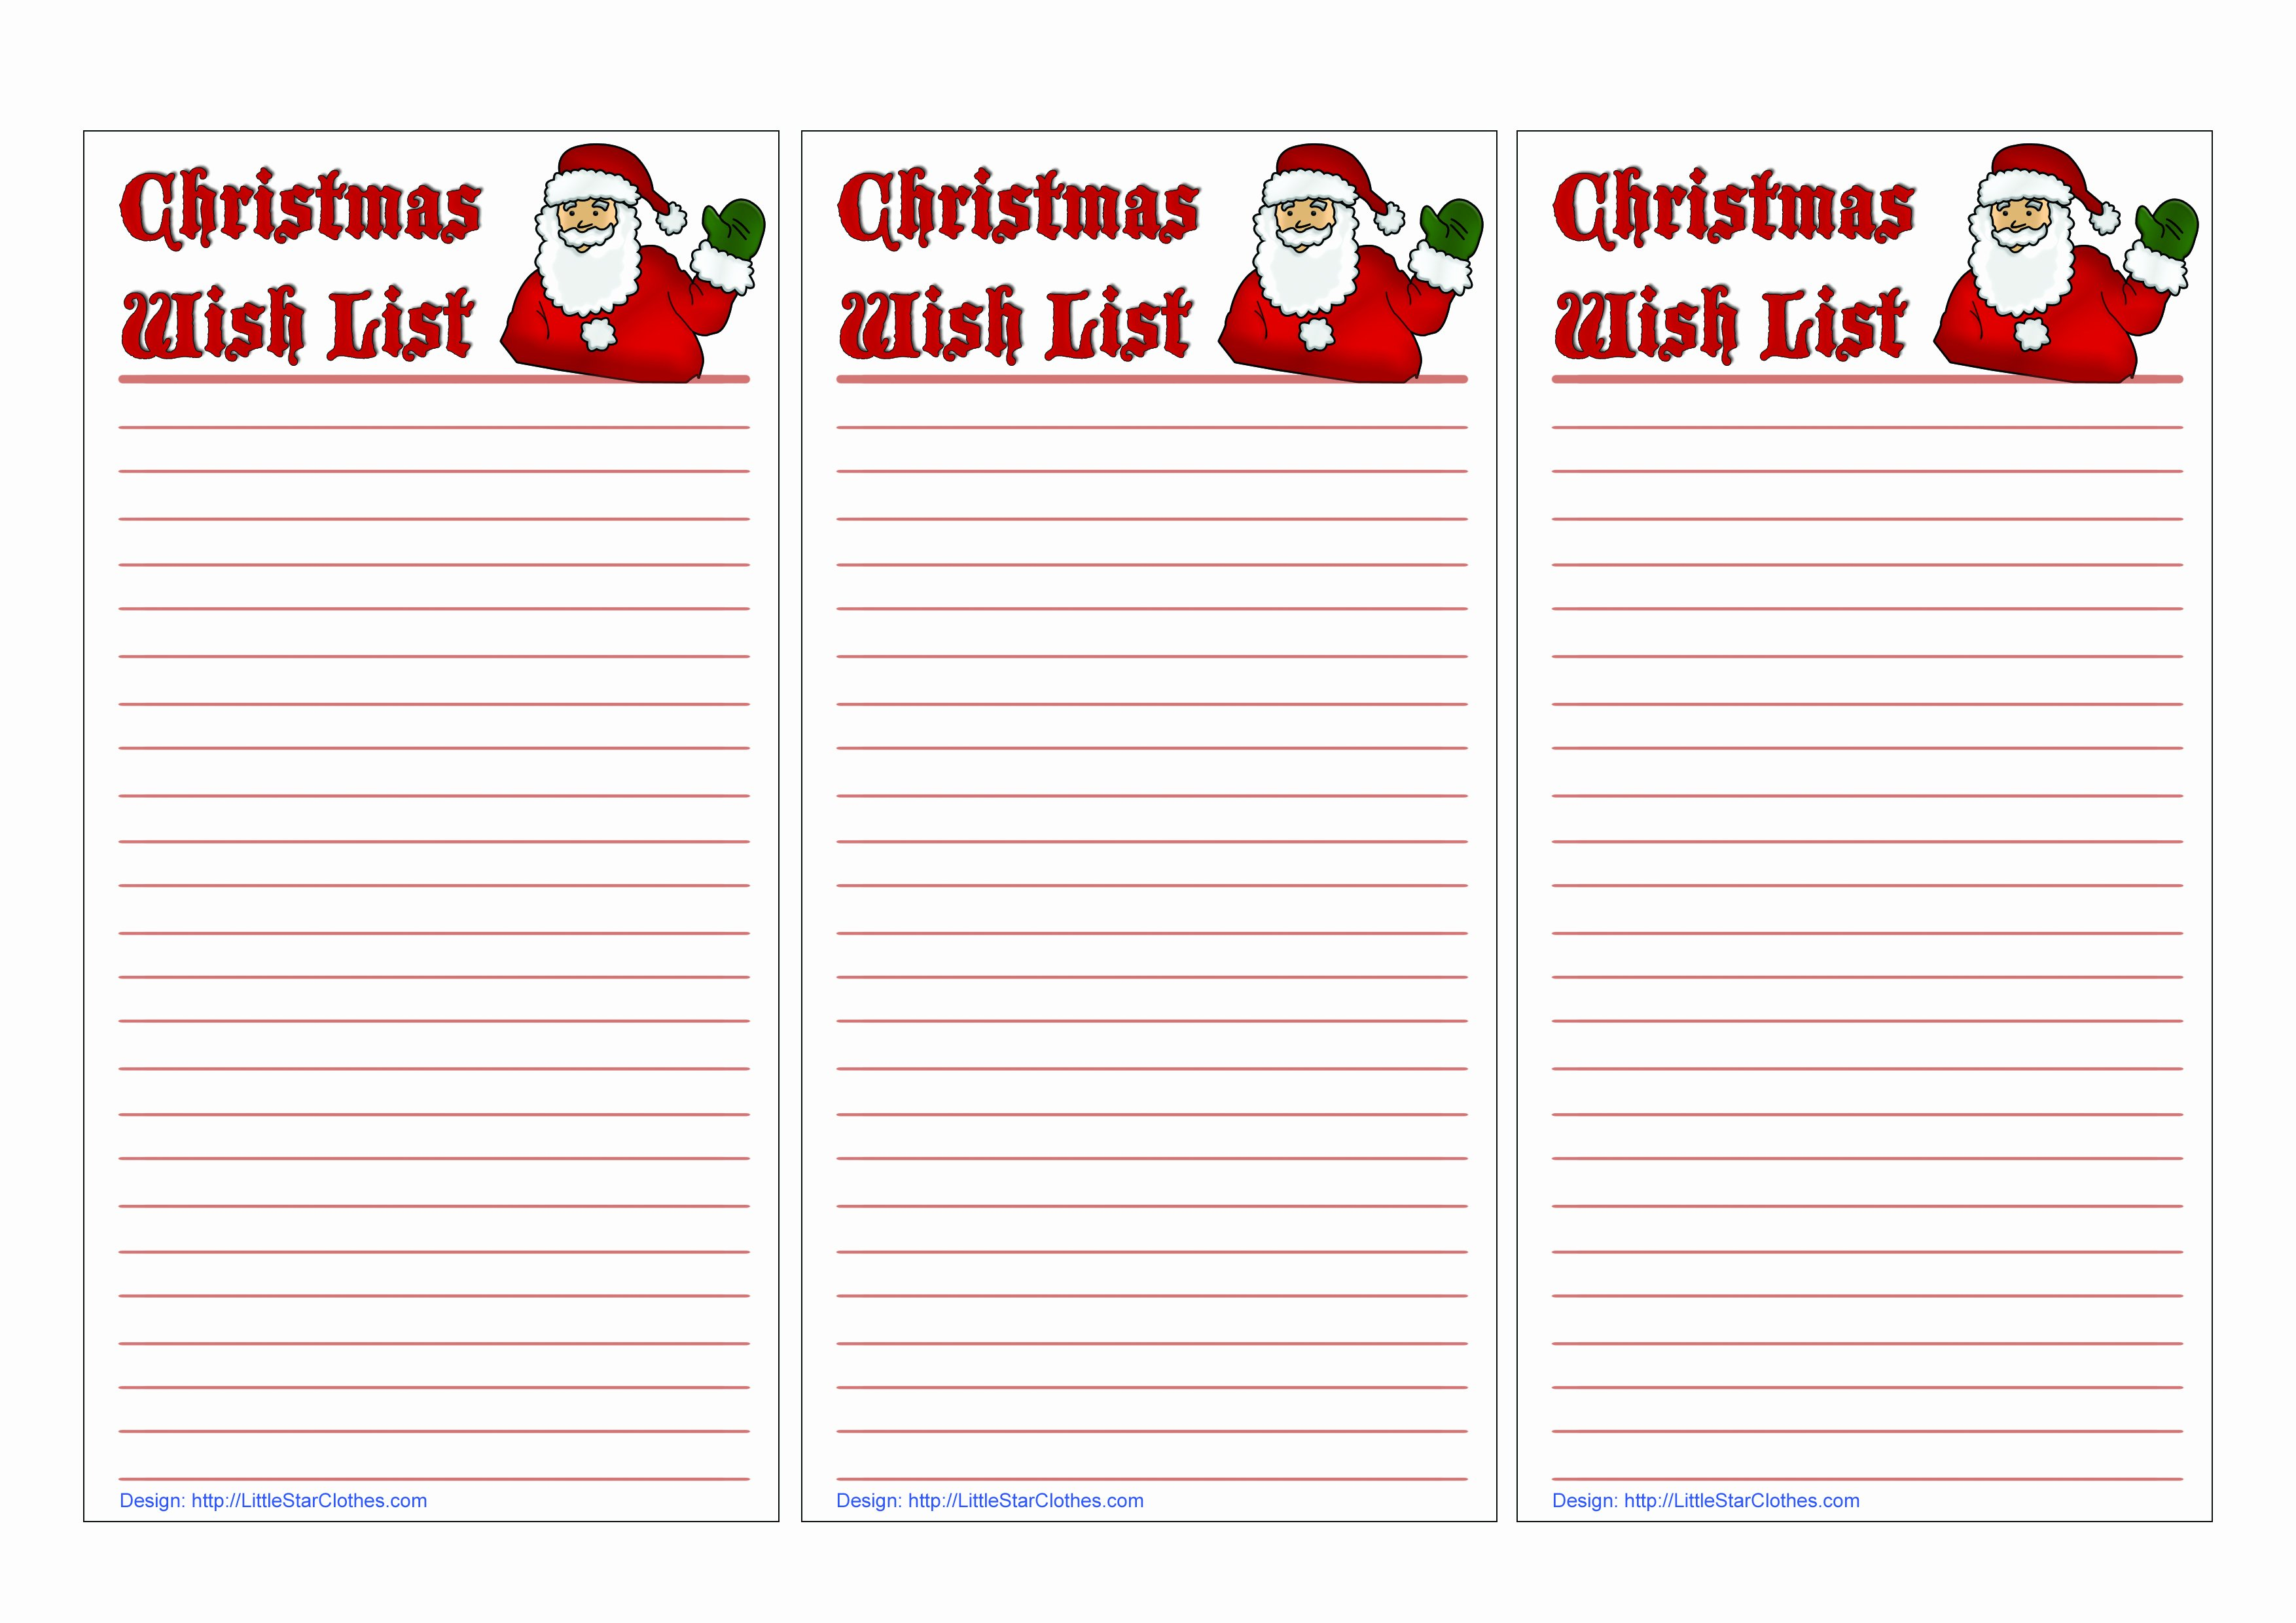 Christmas Wish List Template Luxury Free Printable Holiday Wish List for Kids Best Ideas